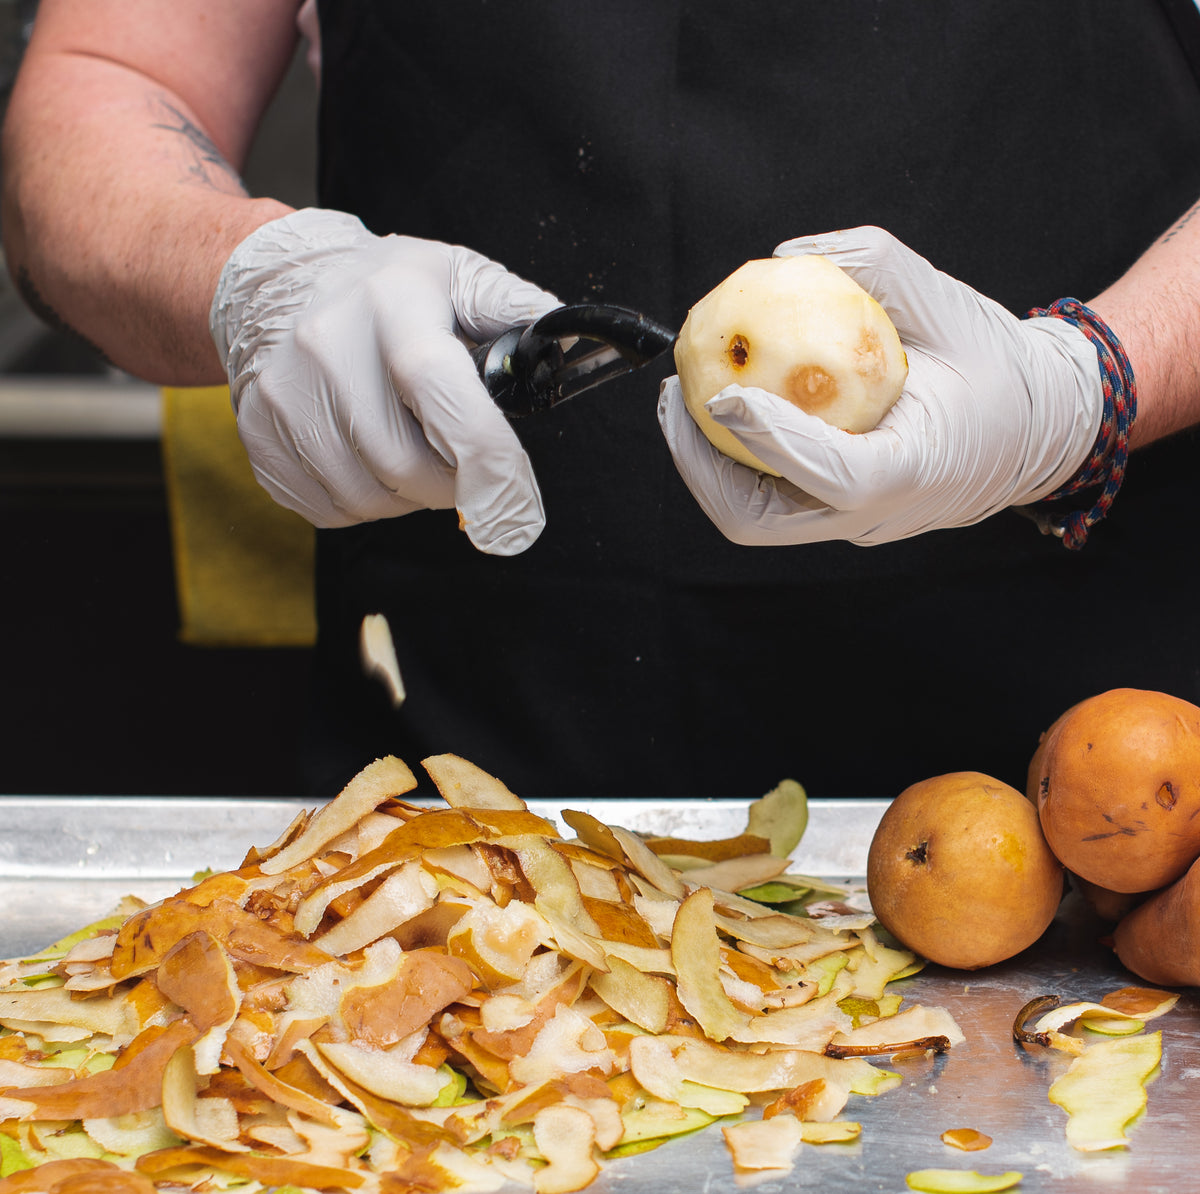 Glove hands use a vegetable peeler to remove skin from pears to be used in jams, vinaigrettes, and vinegars.